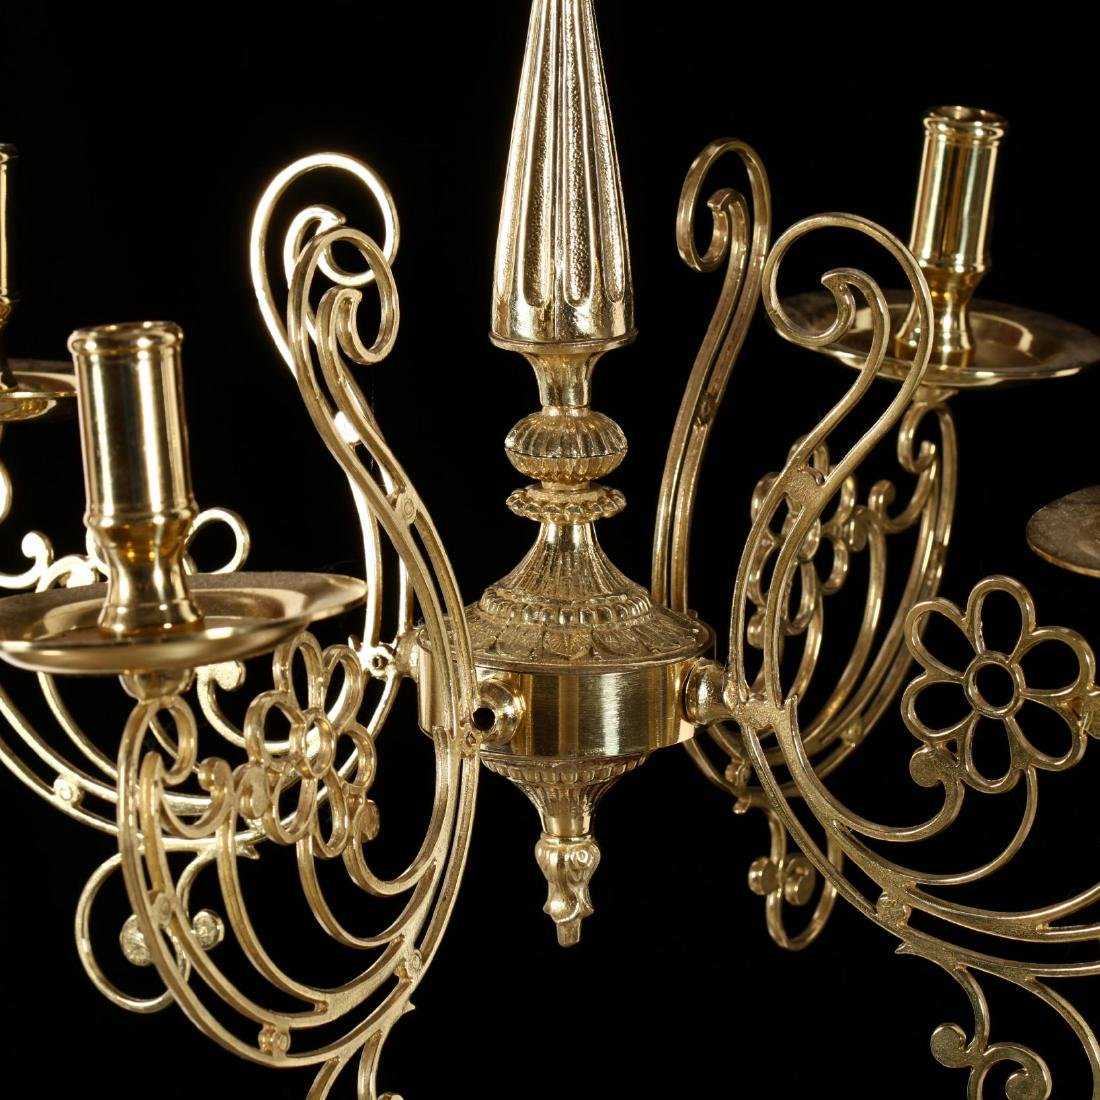 Contemporary Four-Arm Brass Chandelier - 2